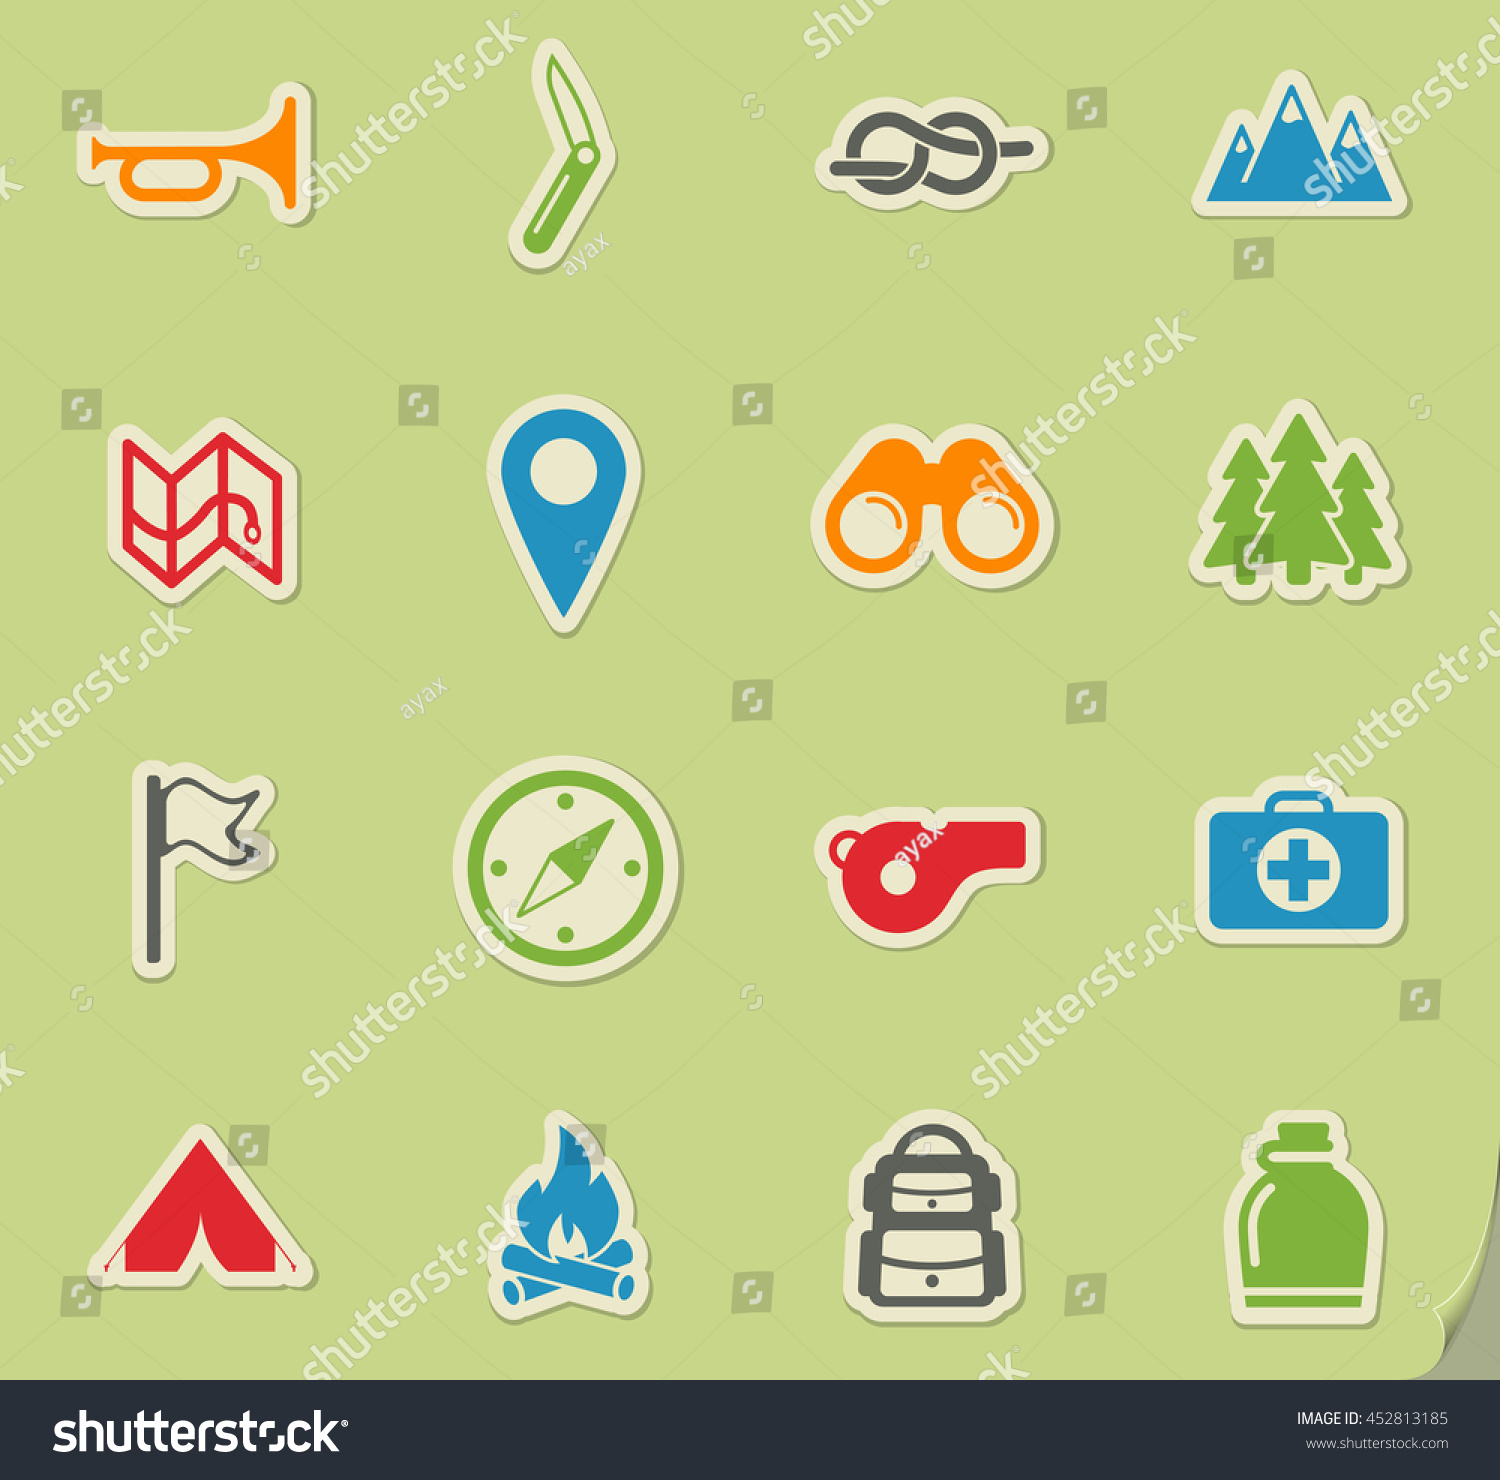 Boy scout simply symbols web icons stock vector 452813185 boy scout simply symbols for web icons biocorpaavc Images